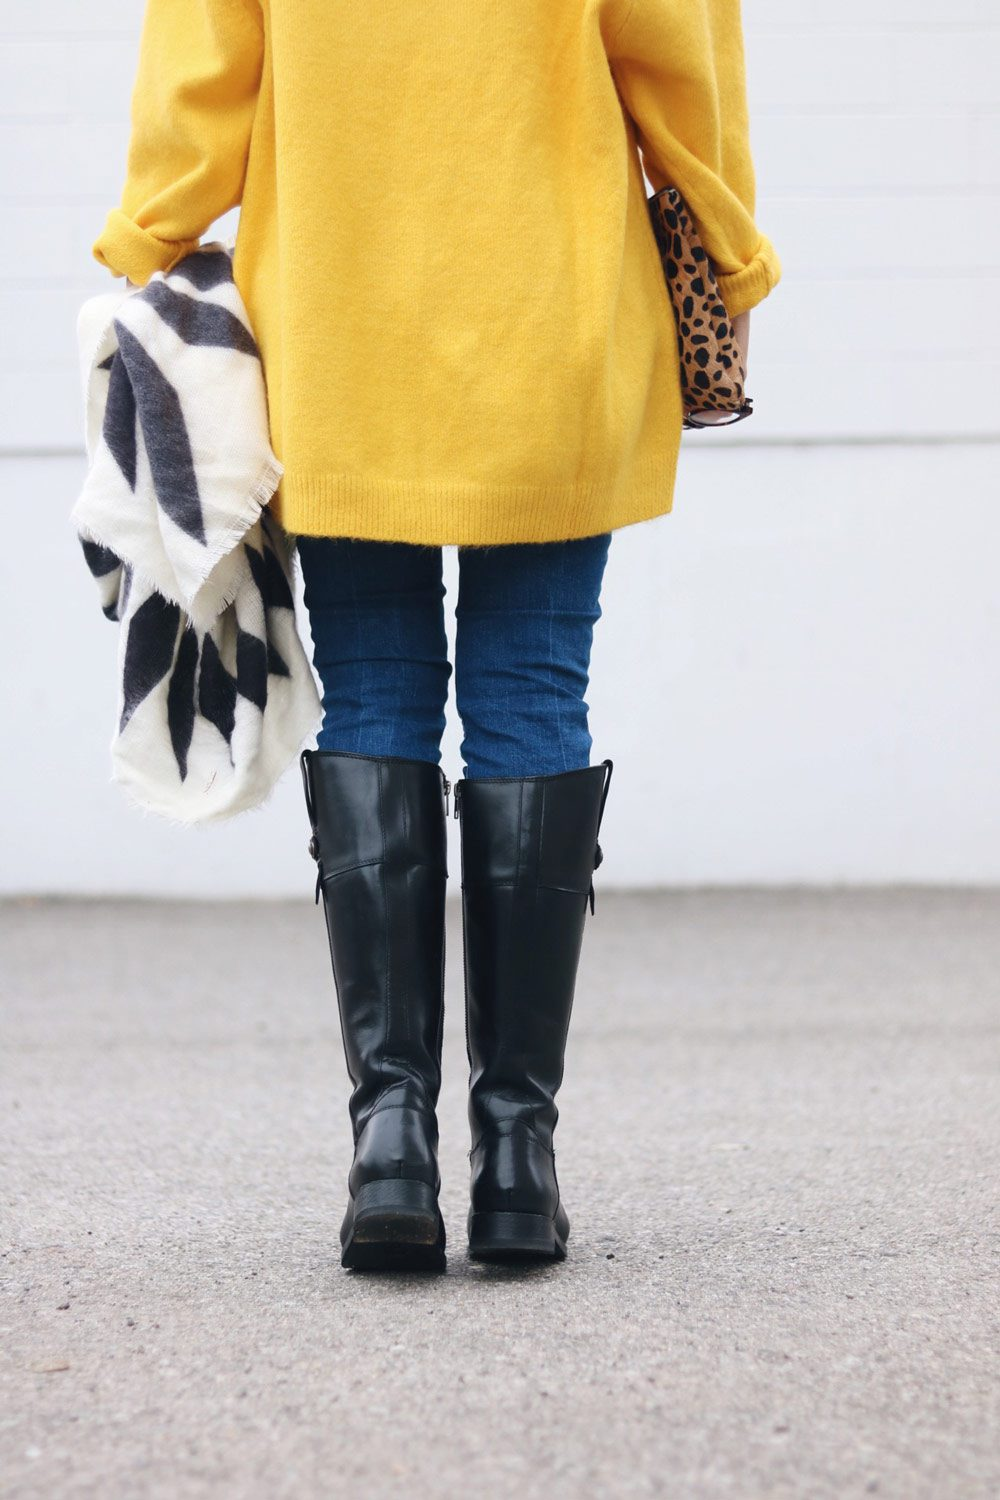 frye-boots-yellow-sweater